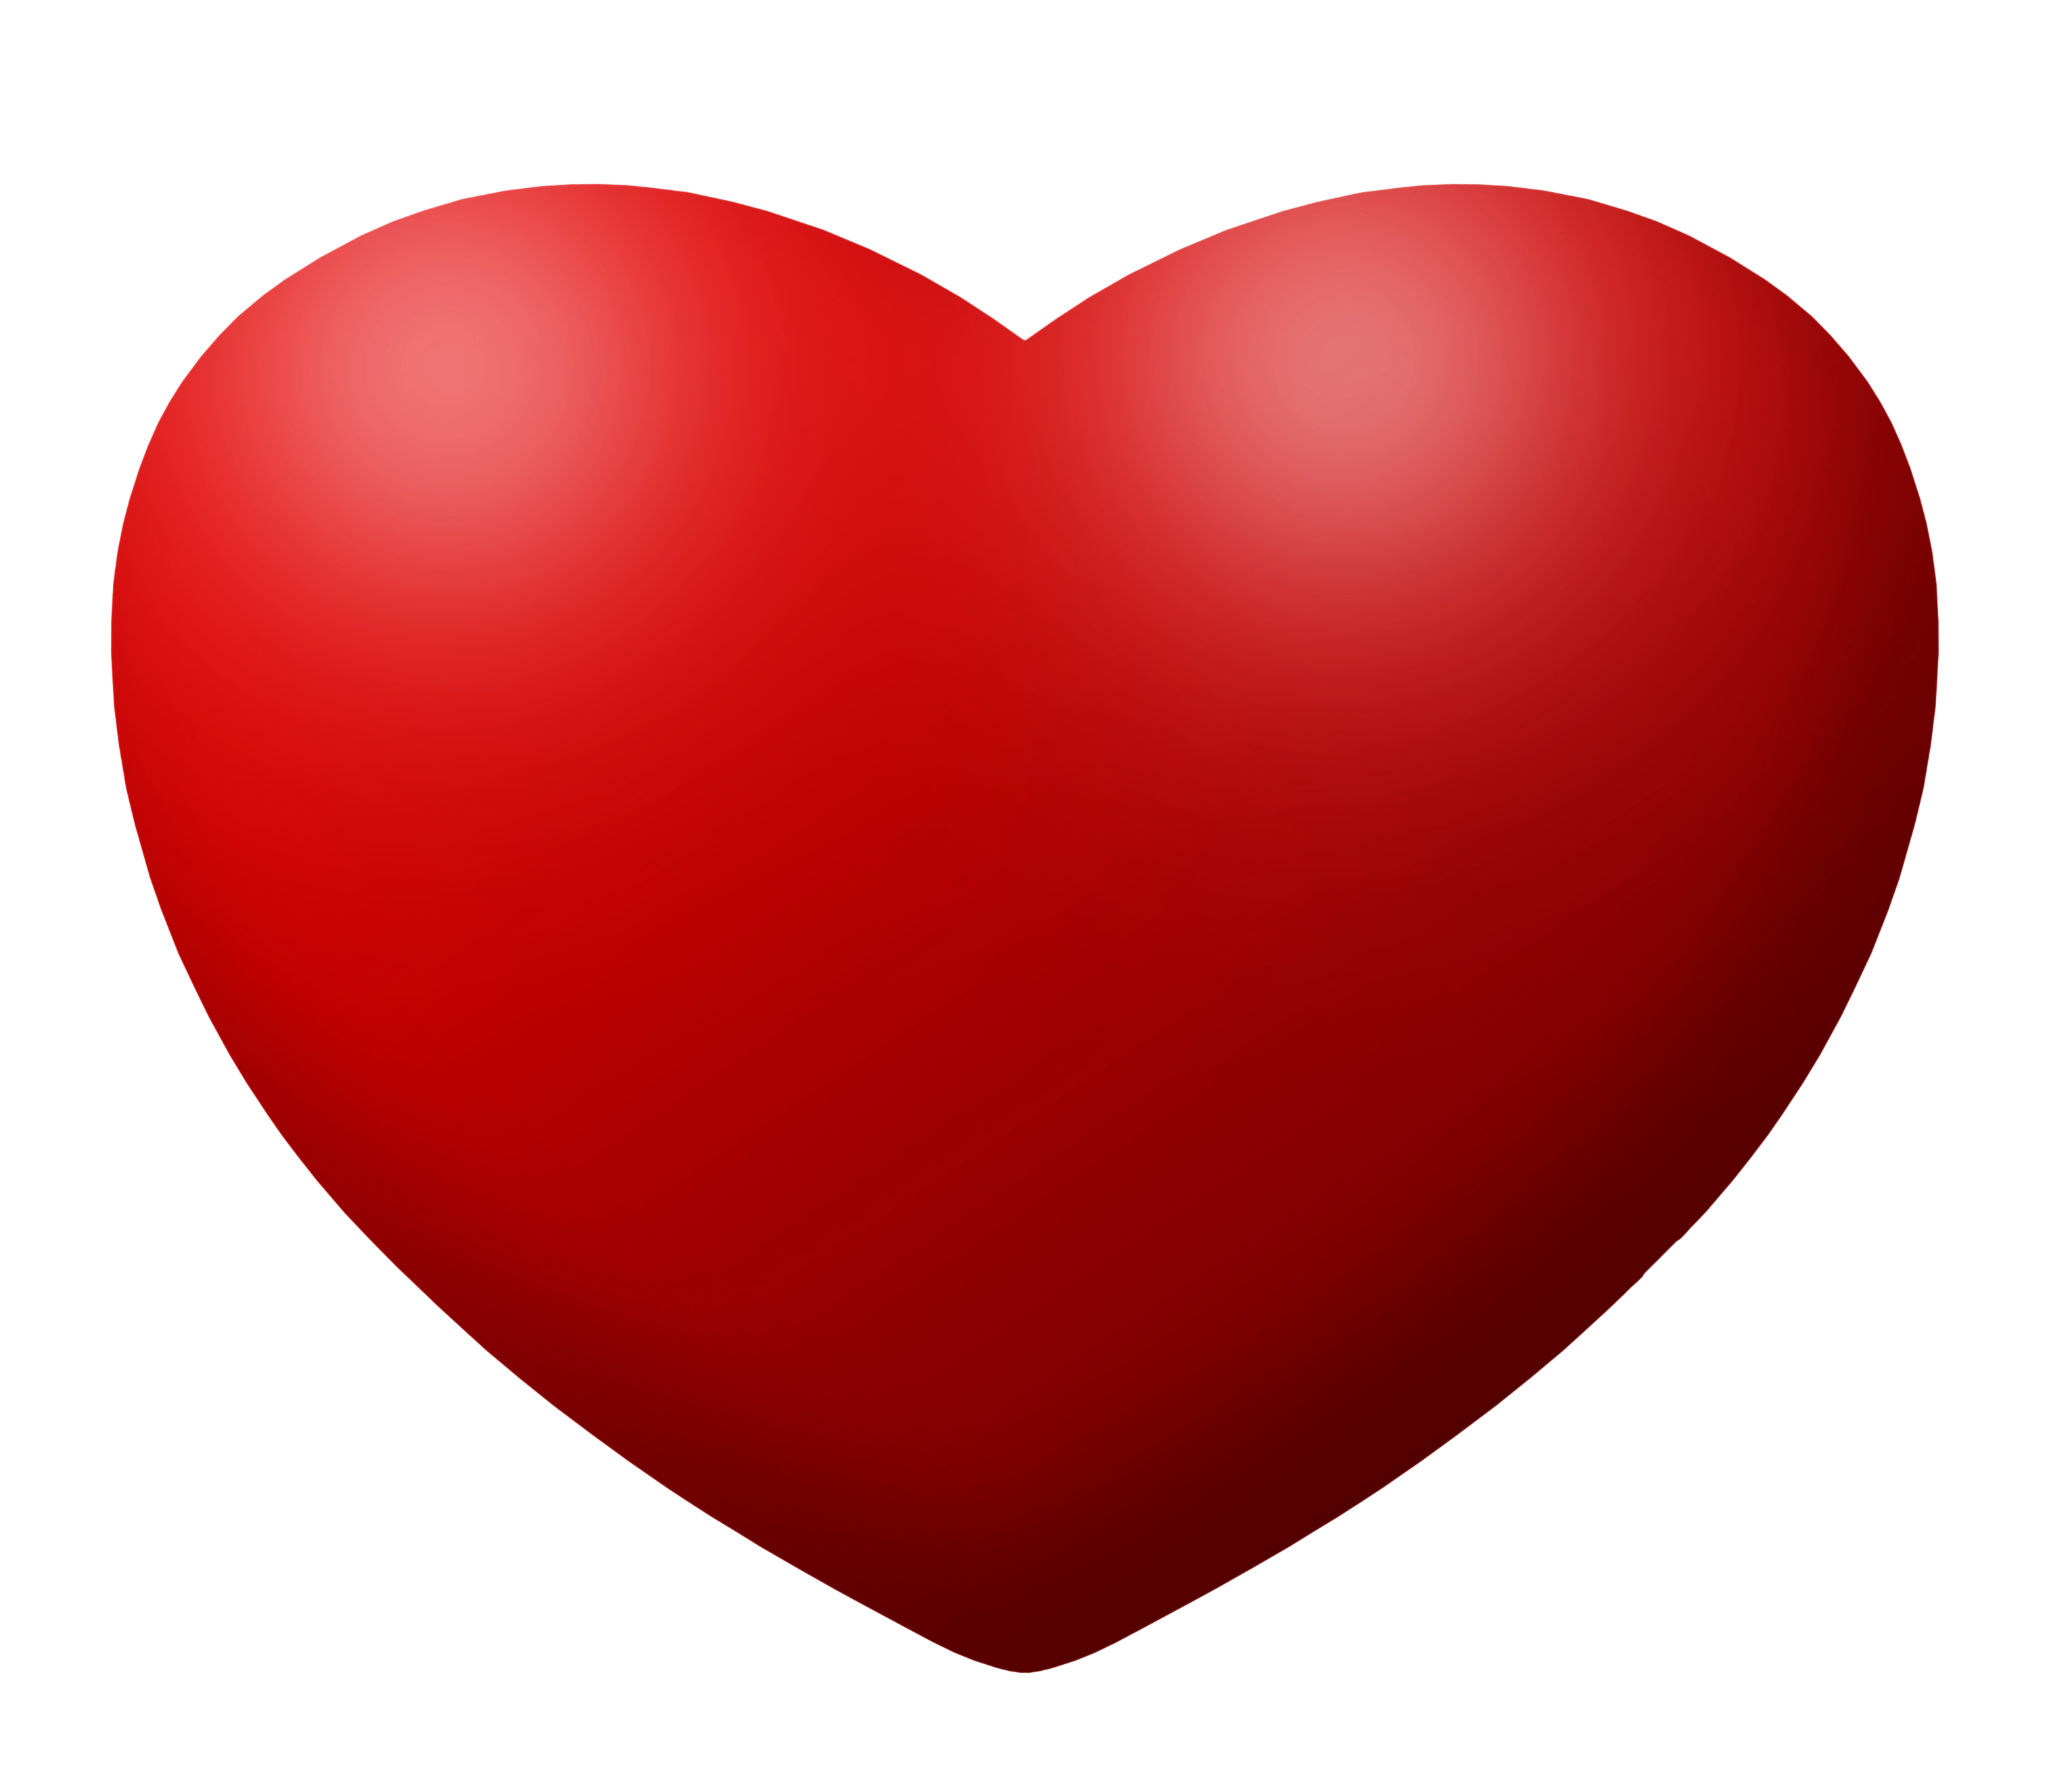 Heart PNG image, free download - Heart PNG - Heart PNG HD Transparent Background